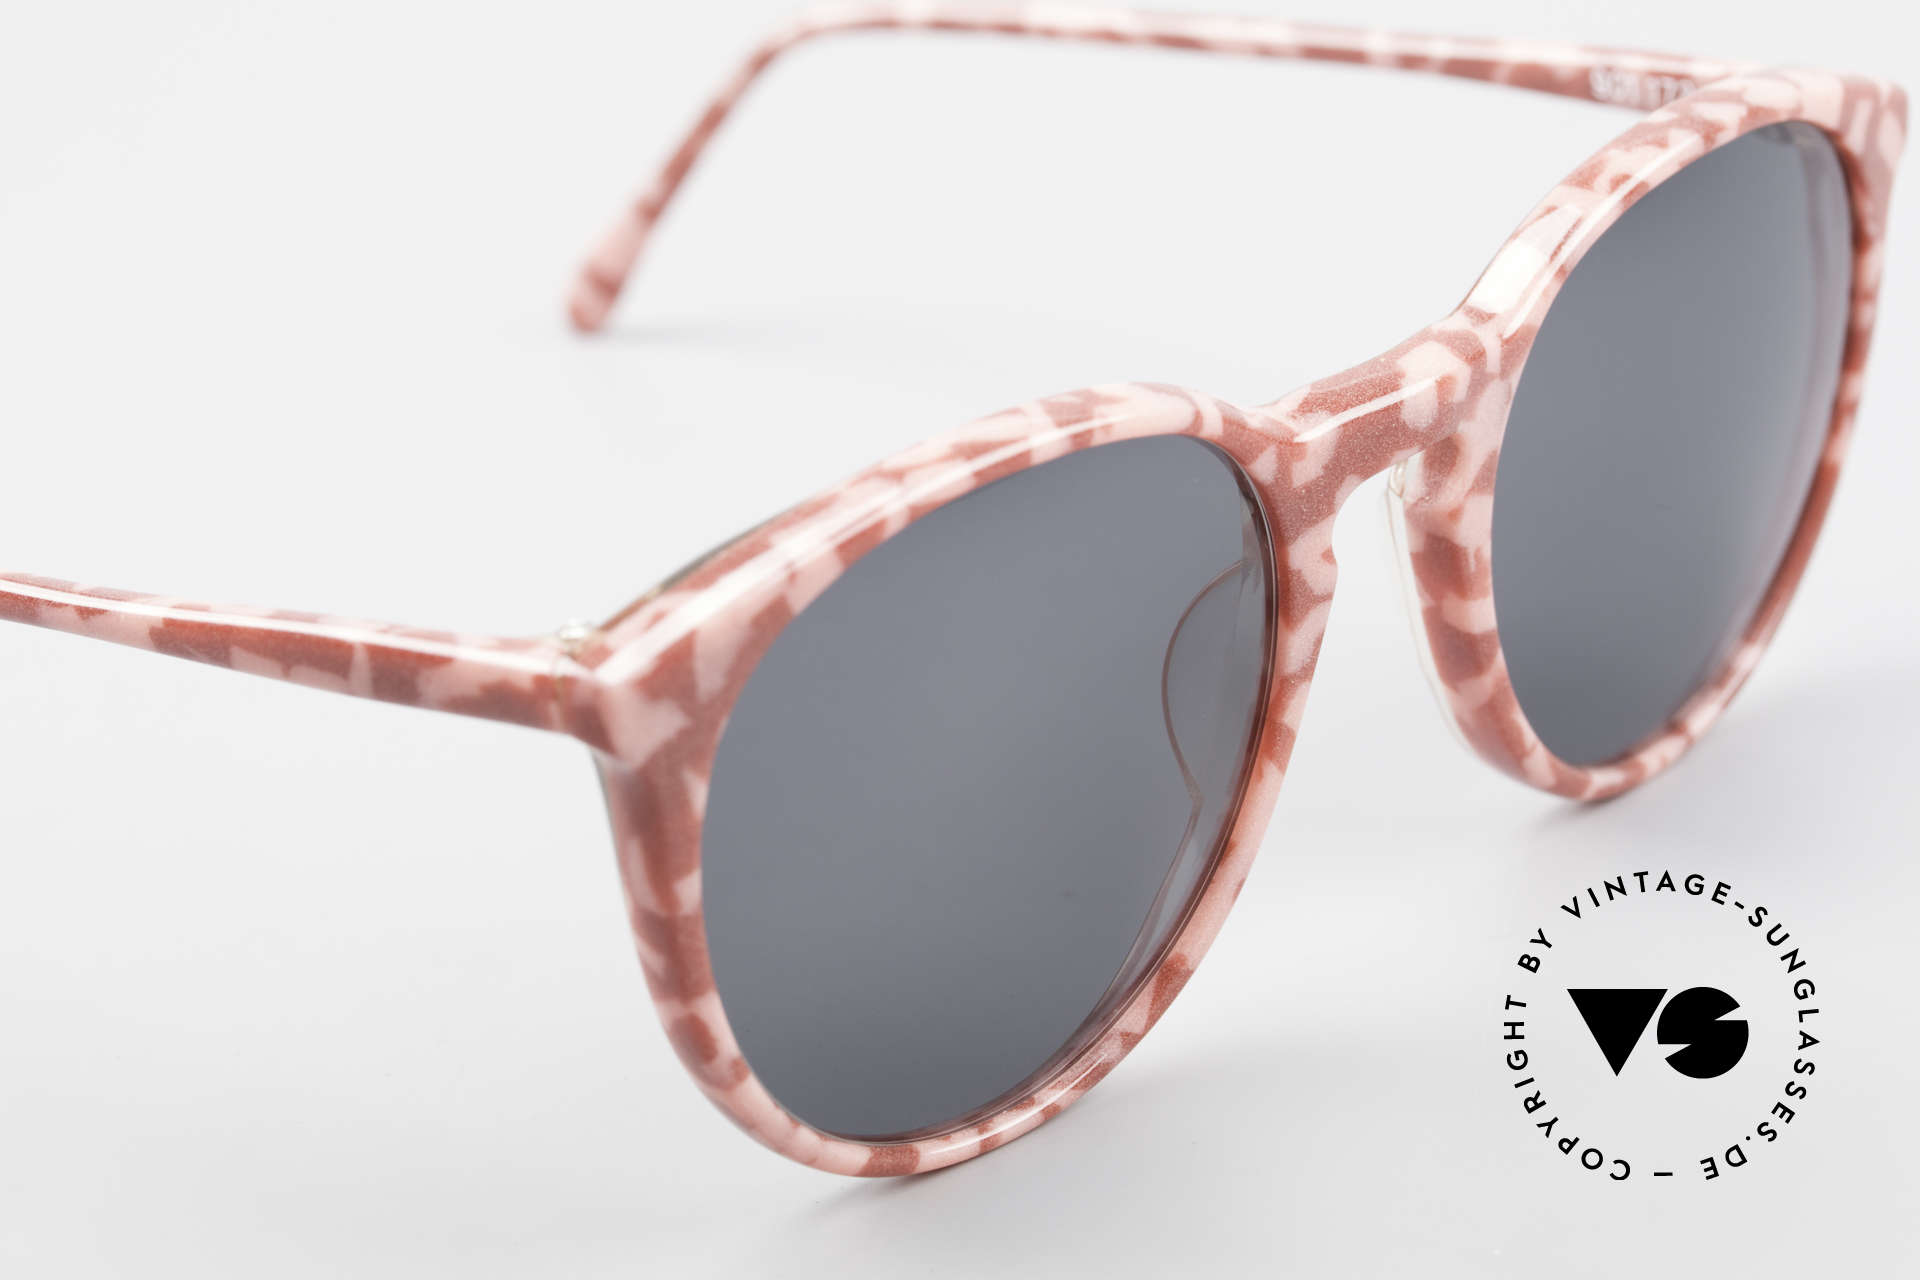 Alain Mikli 901 / 172 Panto Frame Red Pink Marbled, never worn (like all our vintage Alain Mikli specs), Made for Women